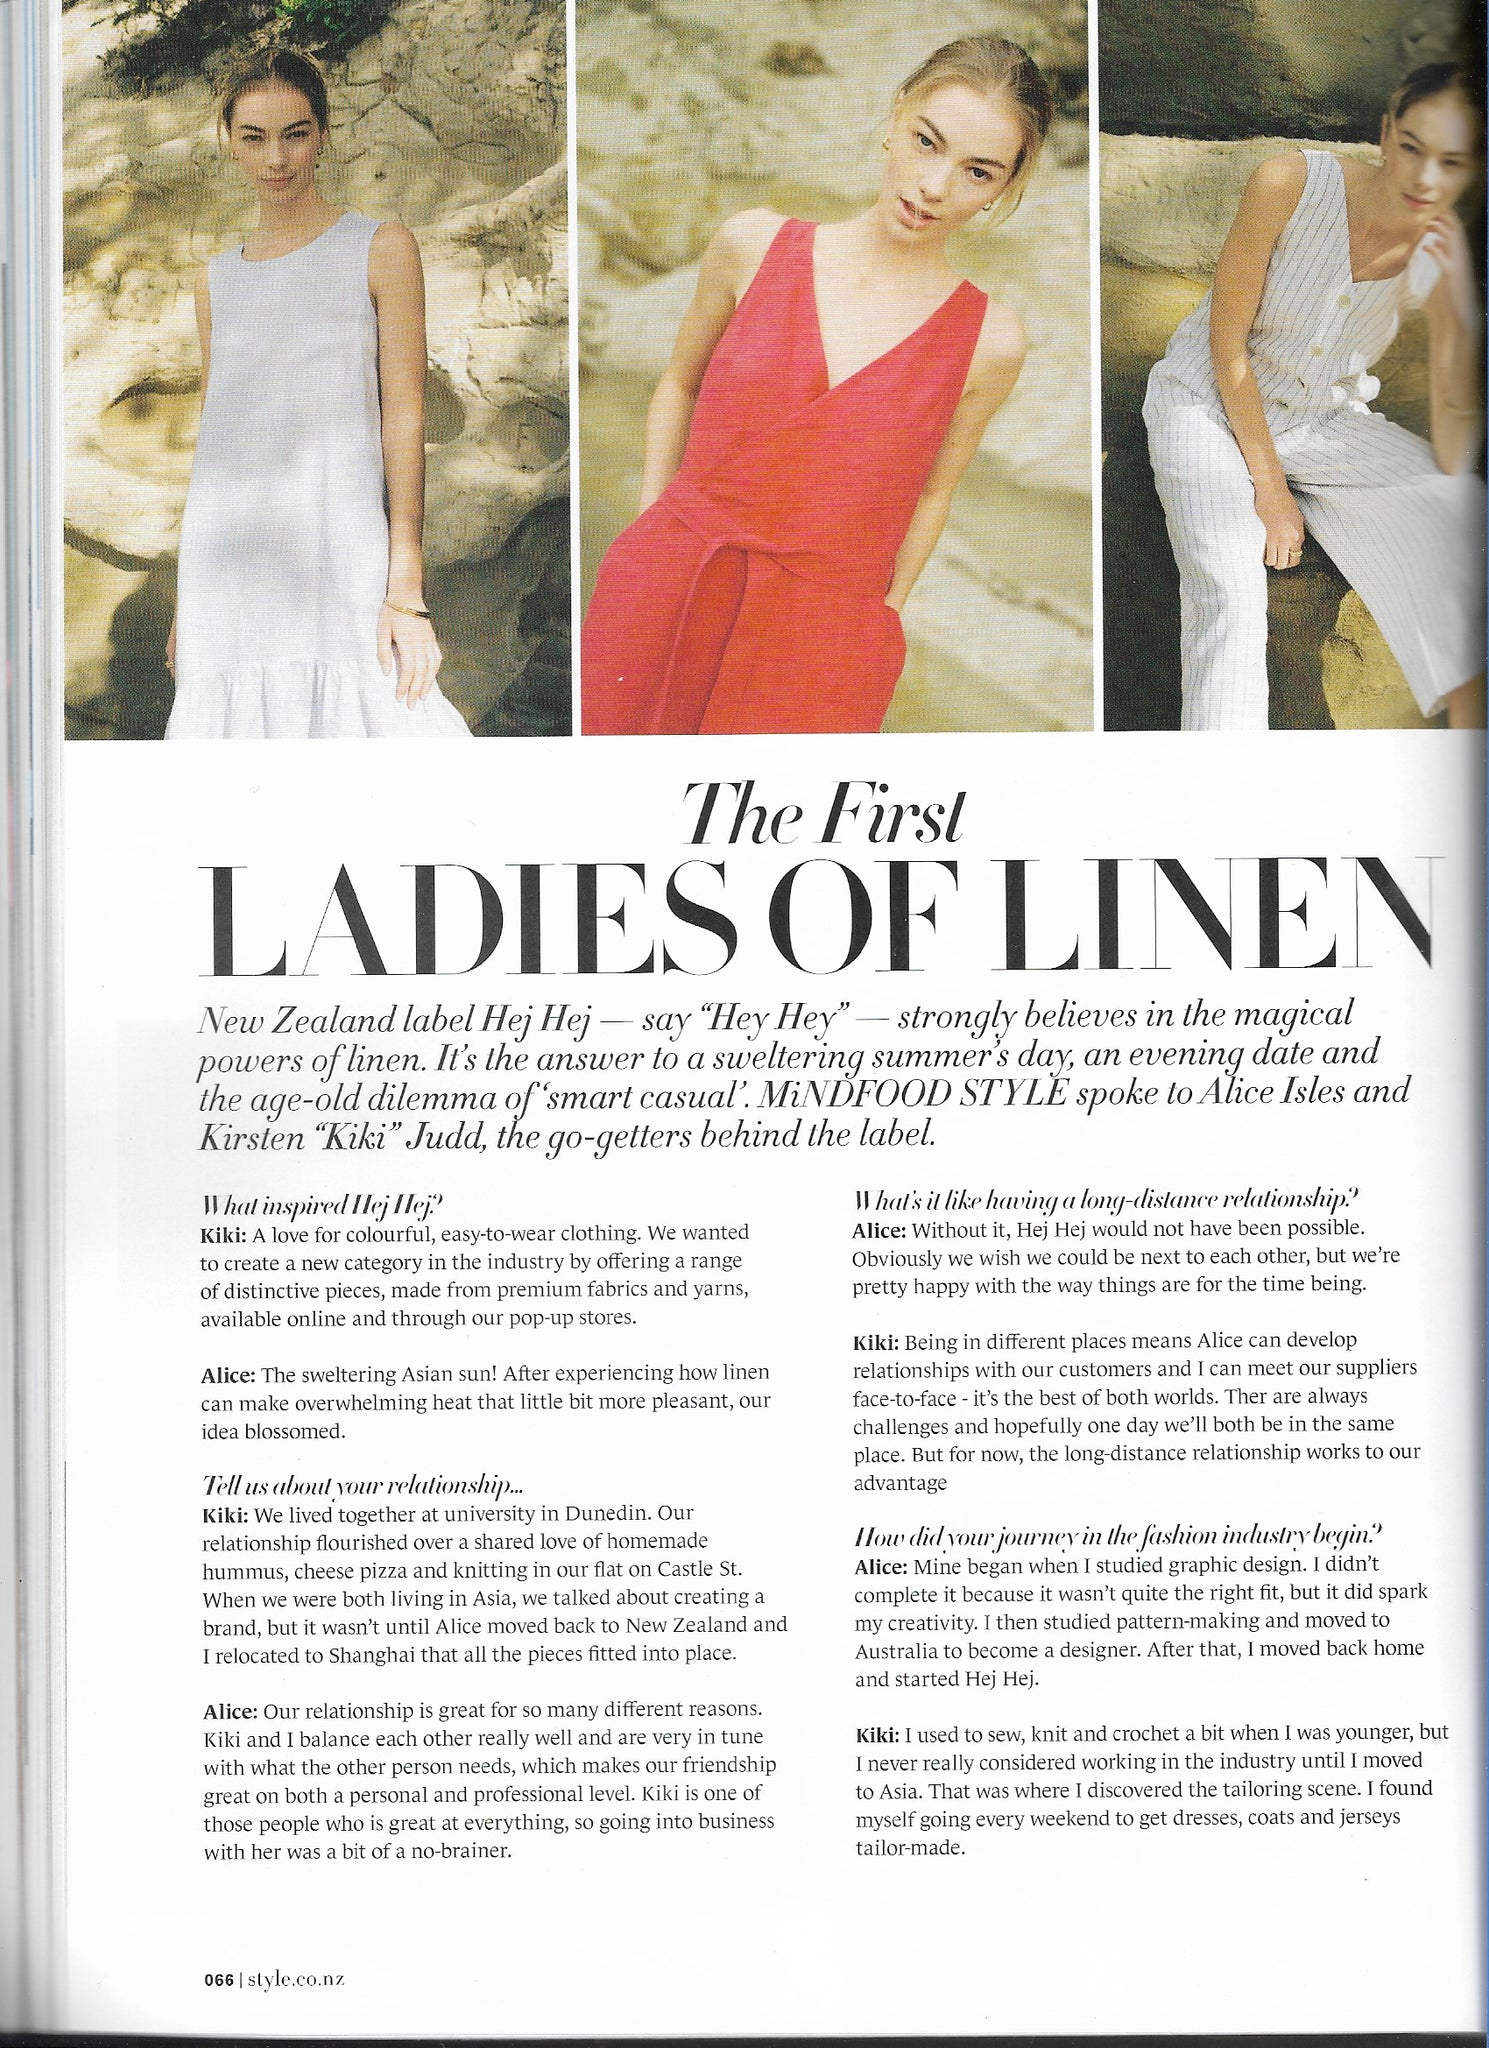 The First Ladies of Linen - Mindfood Style